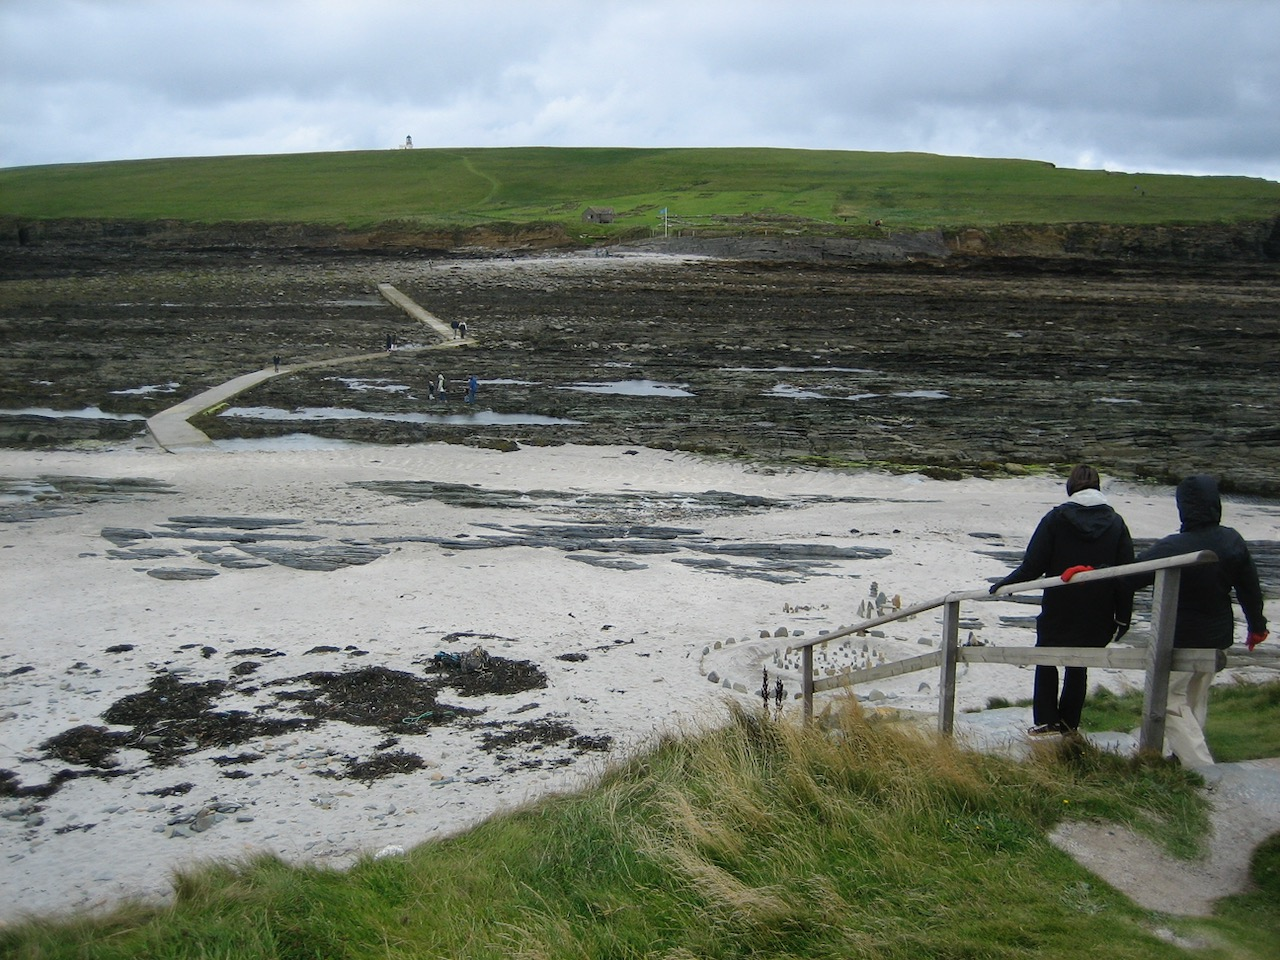 At low tide heading for the causeway to cross to the Broch of Birsay